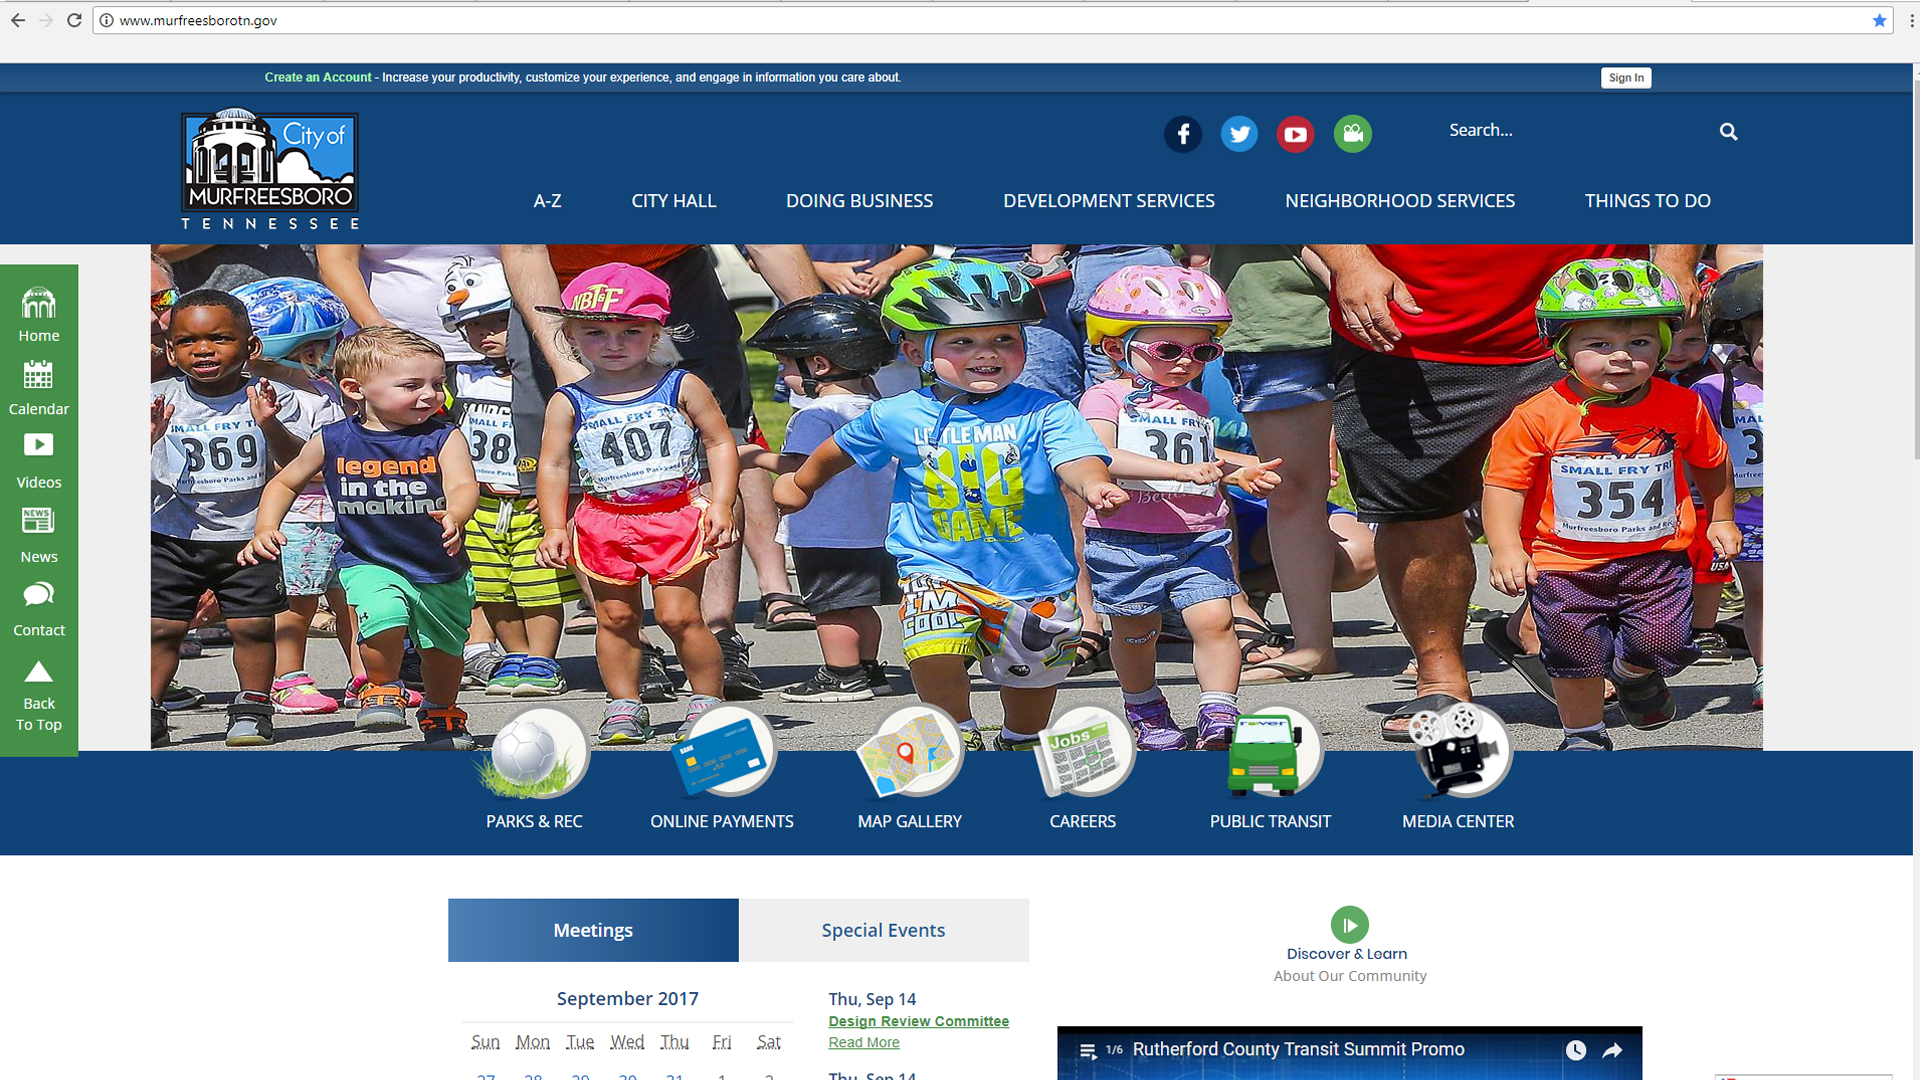 City launches user-friendly website after year-long redesign